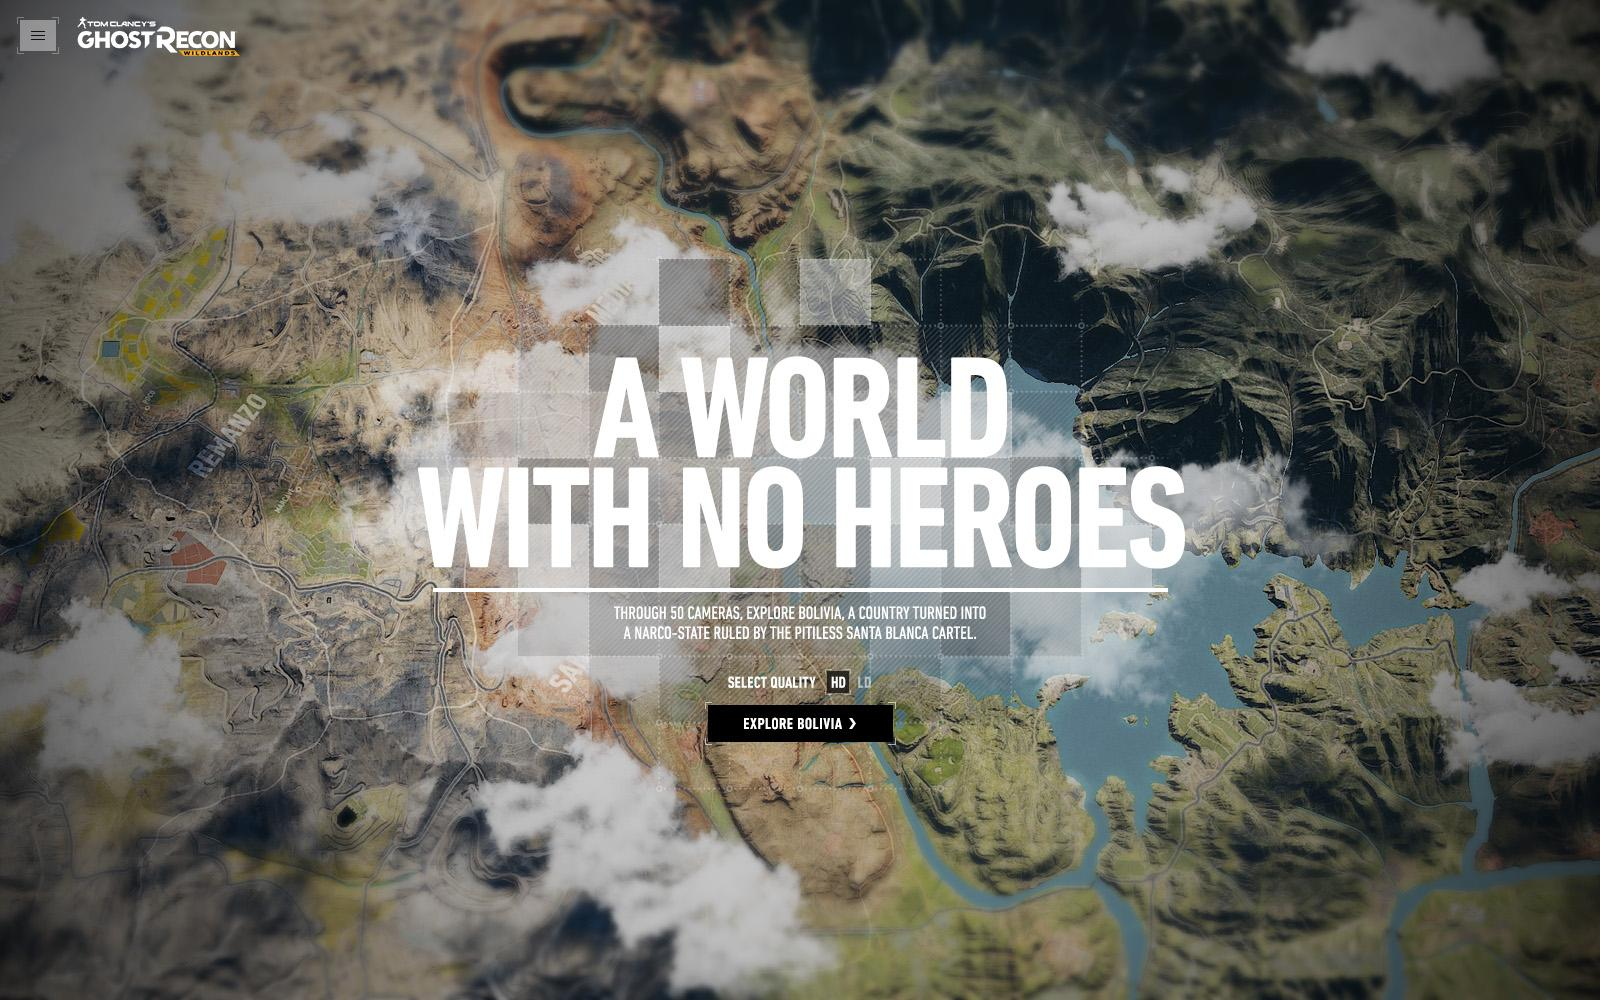 Ghost Recon Digital Ad - A World with No Heroes